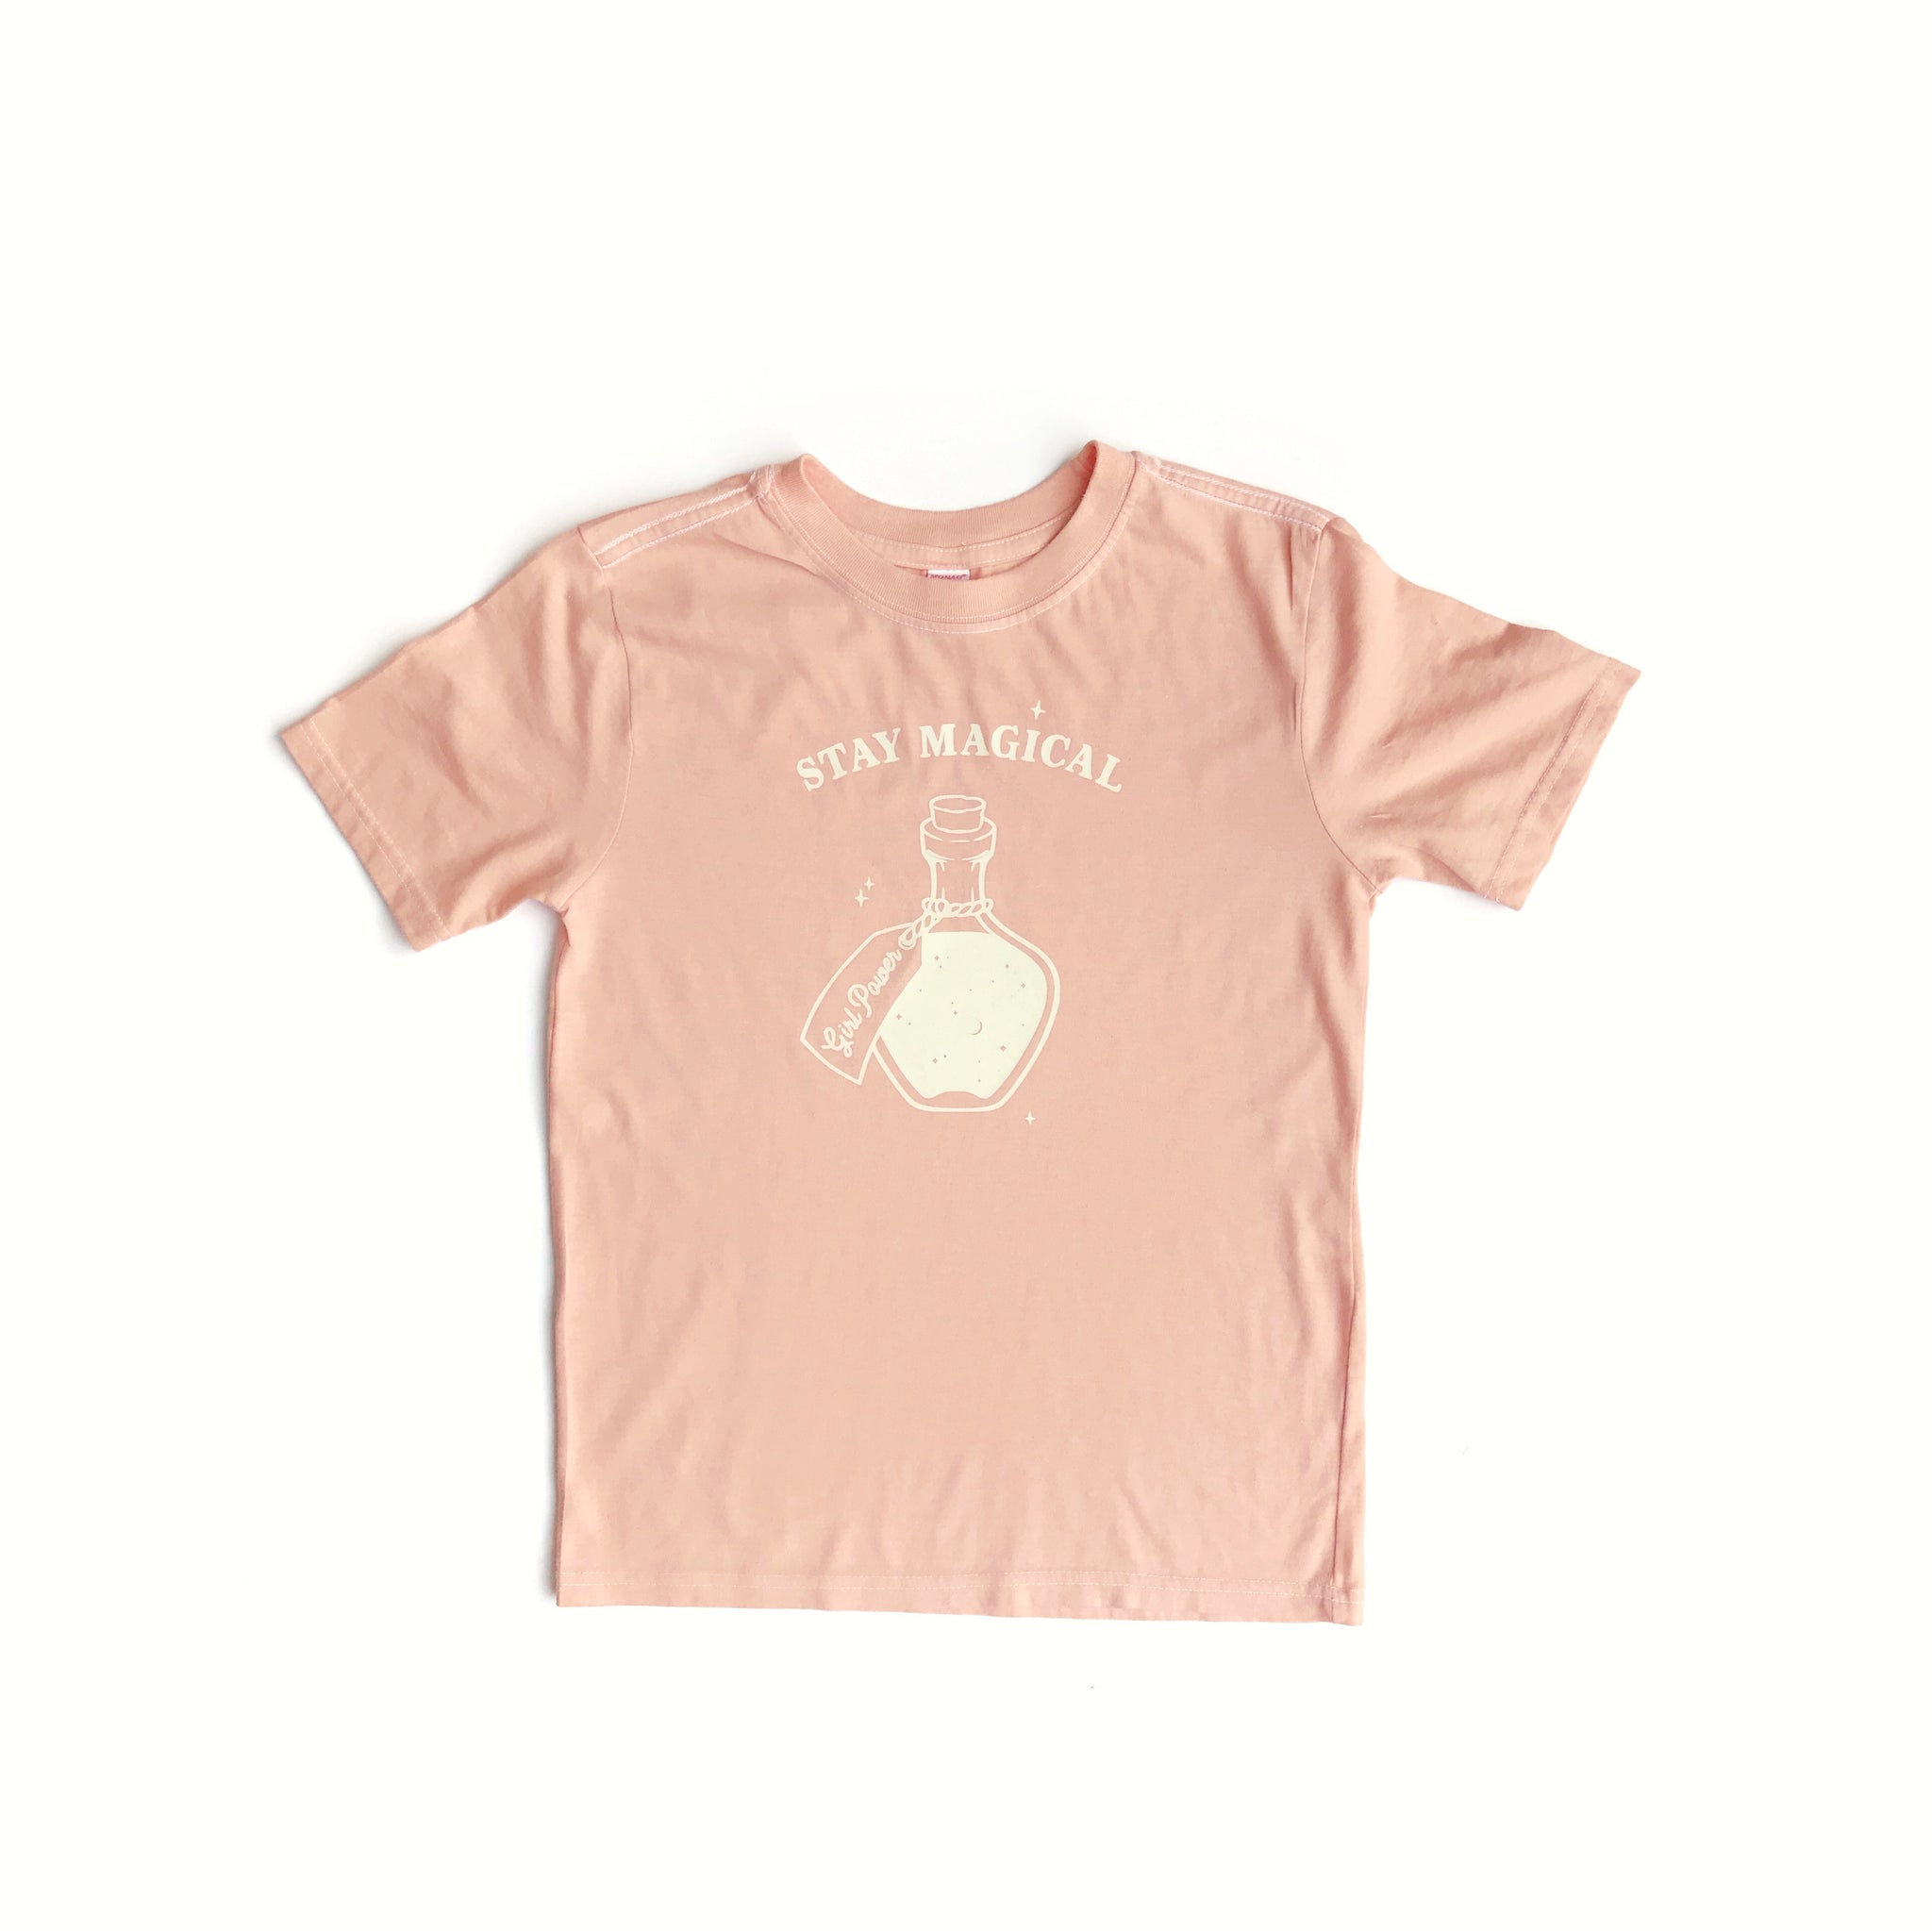 Stay Magical, Girl Power Potion Peach Tees